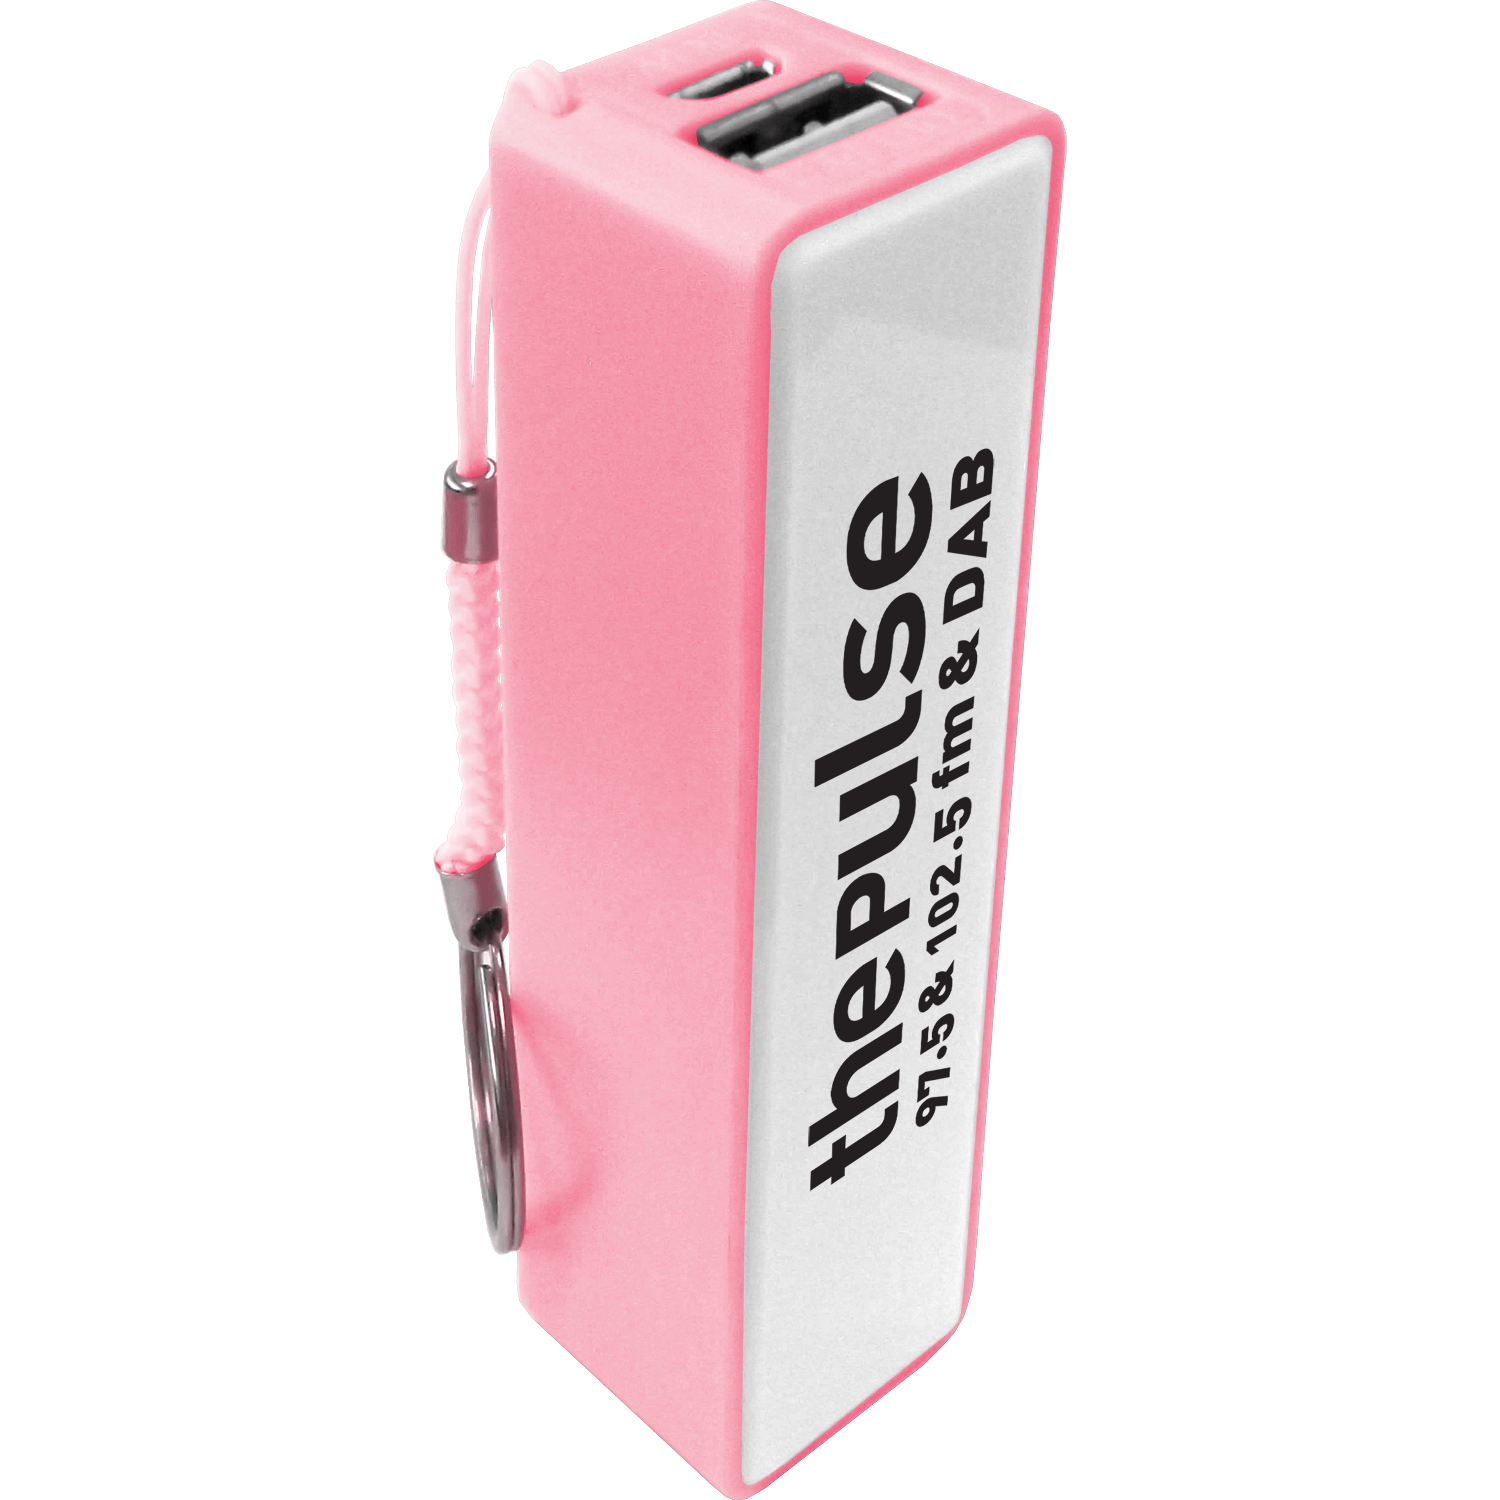 Candy Power Bank Charger 2200mAh